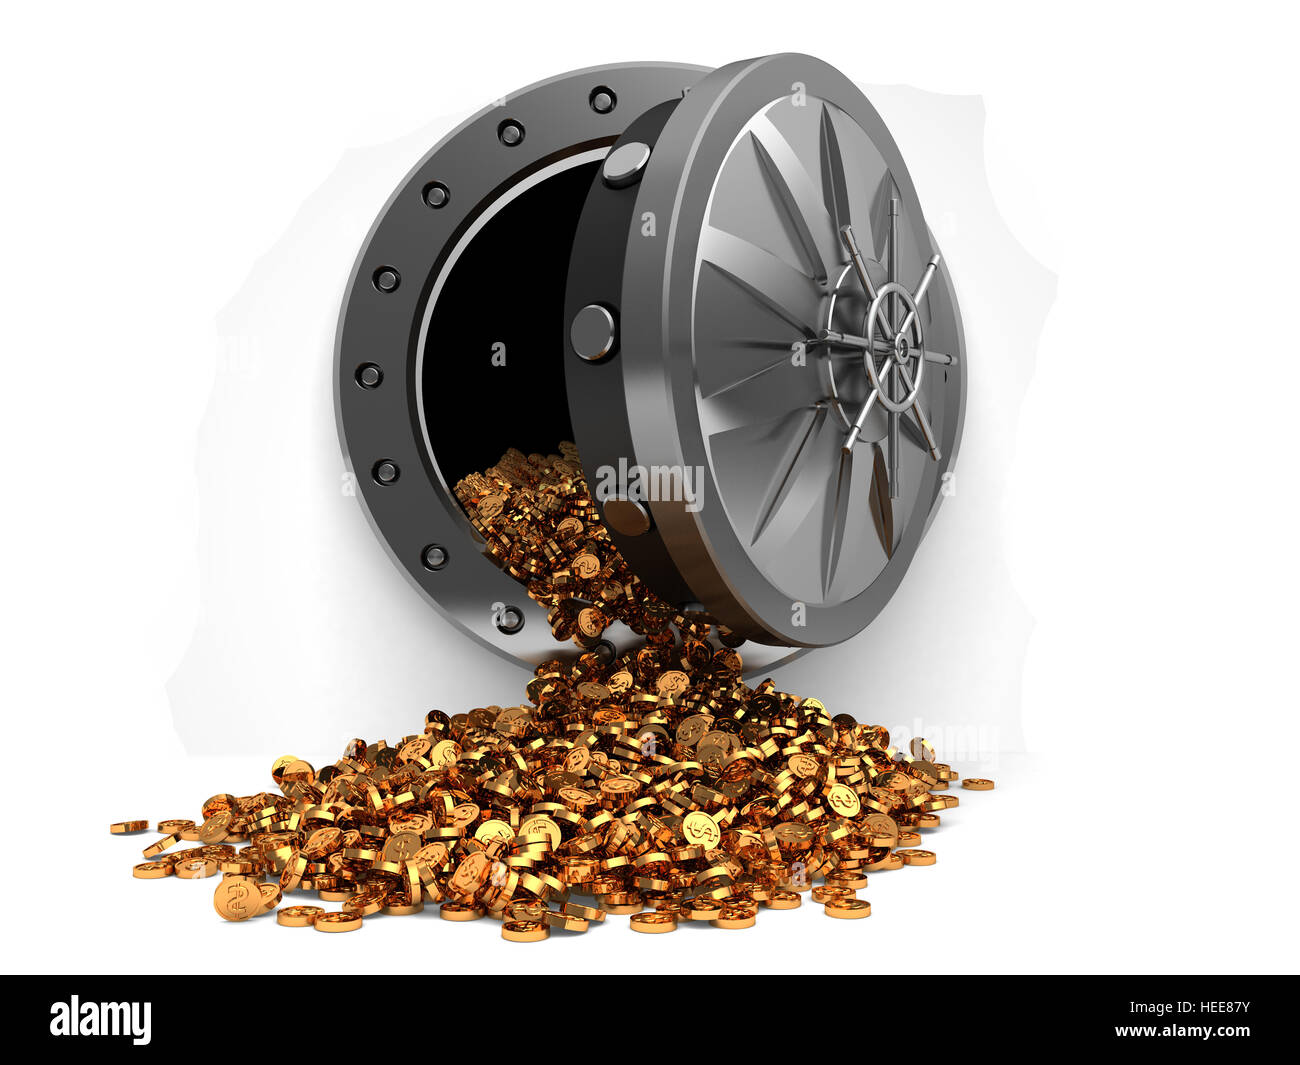 3d illustration of storage full of coins with vault door, over white background - Stock Image